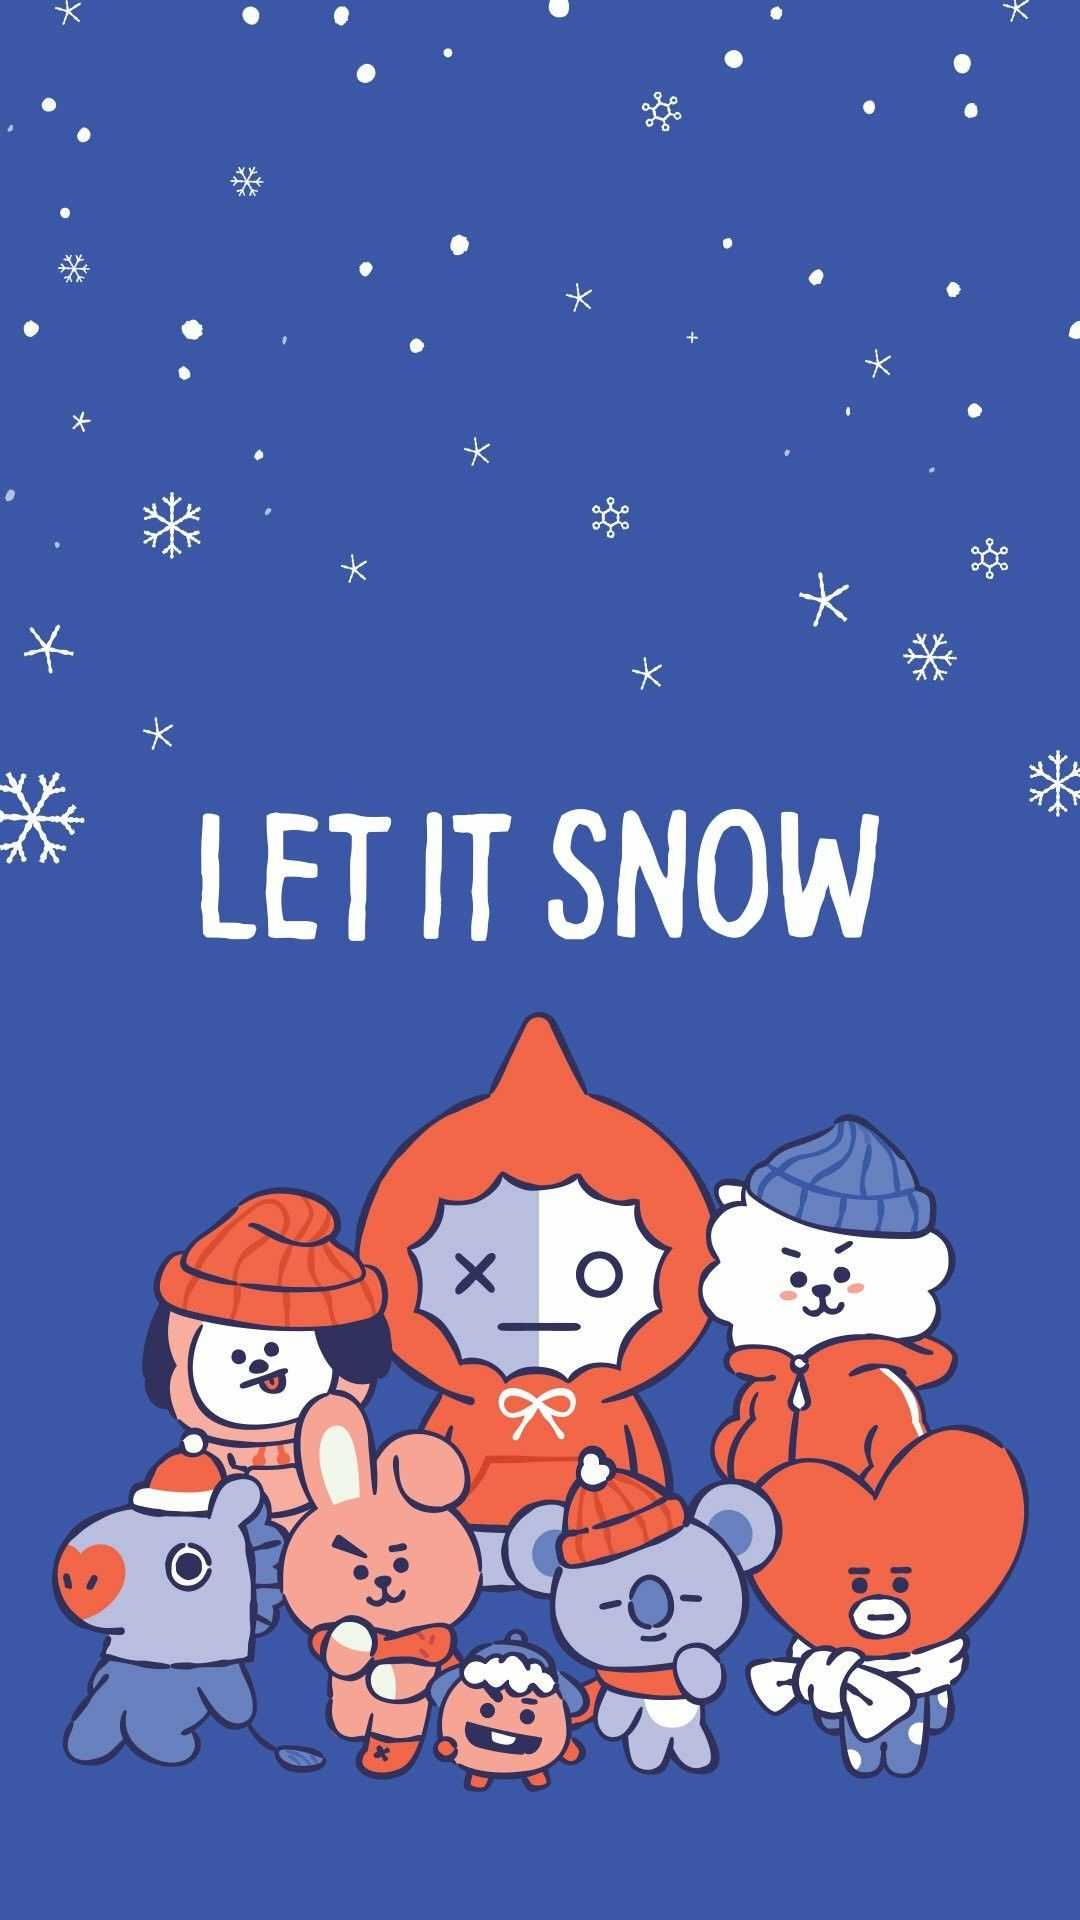 Bt21 Christmas Wallpaper Bts Christmas Bts Fanart Bts Wallpaper